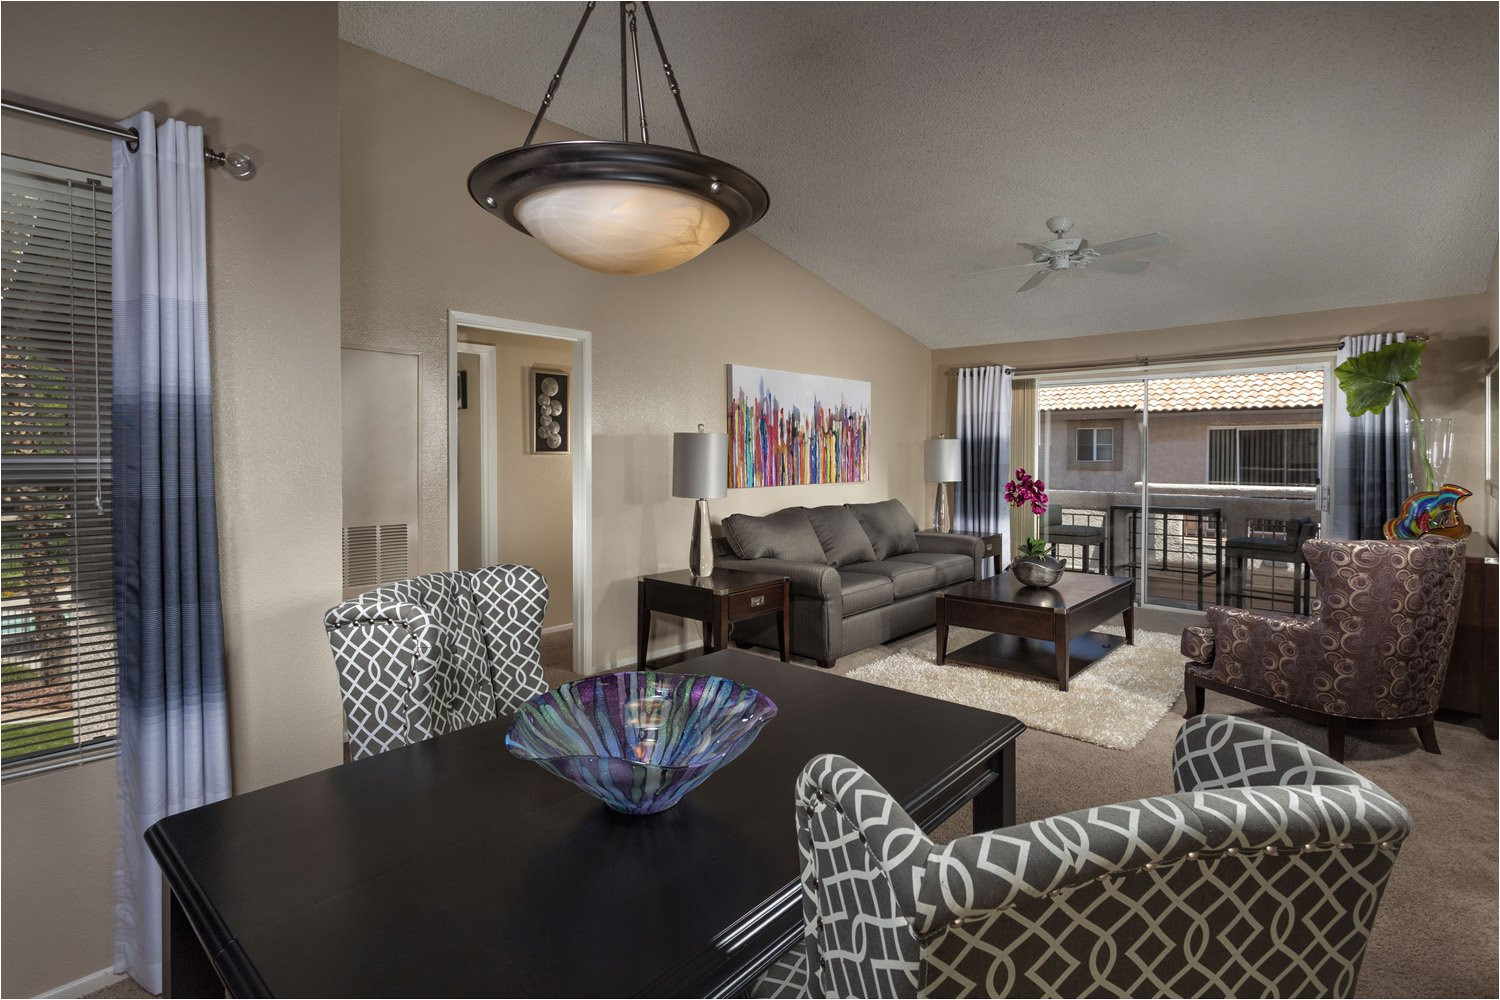 sahara west apartments dining area